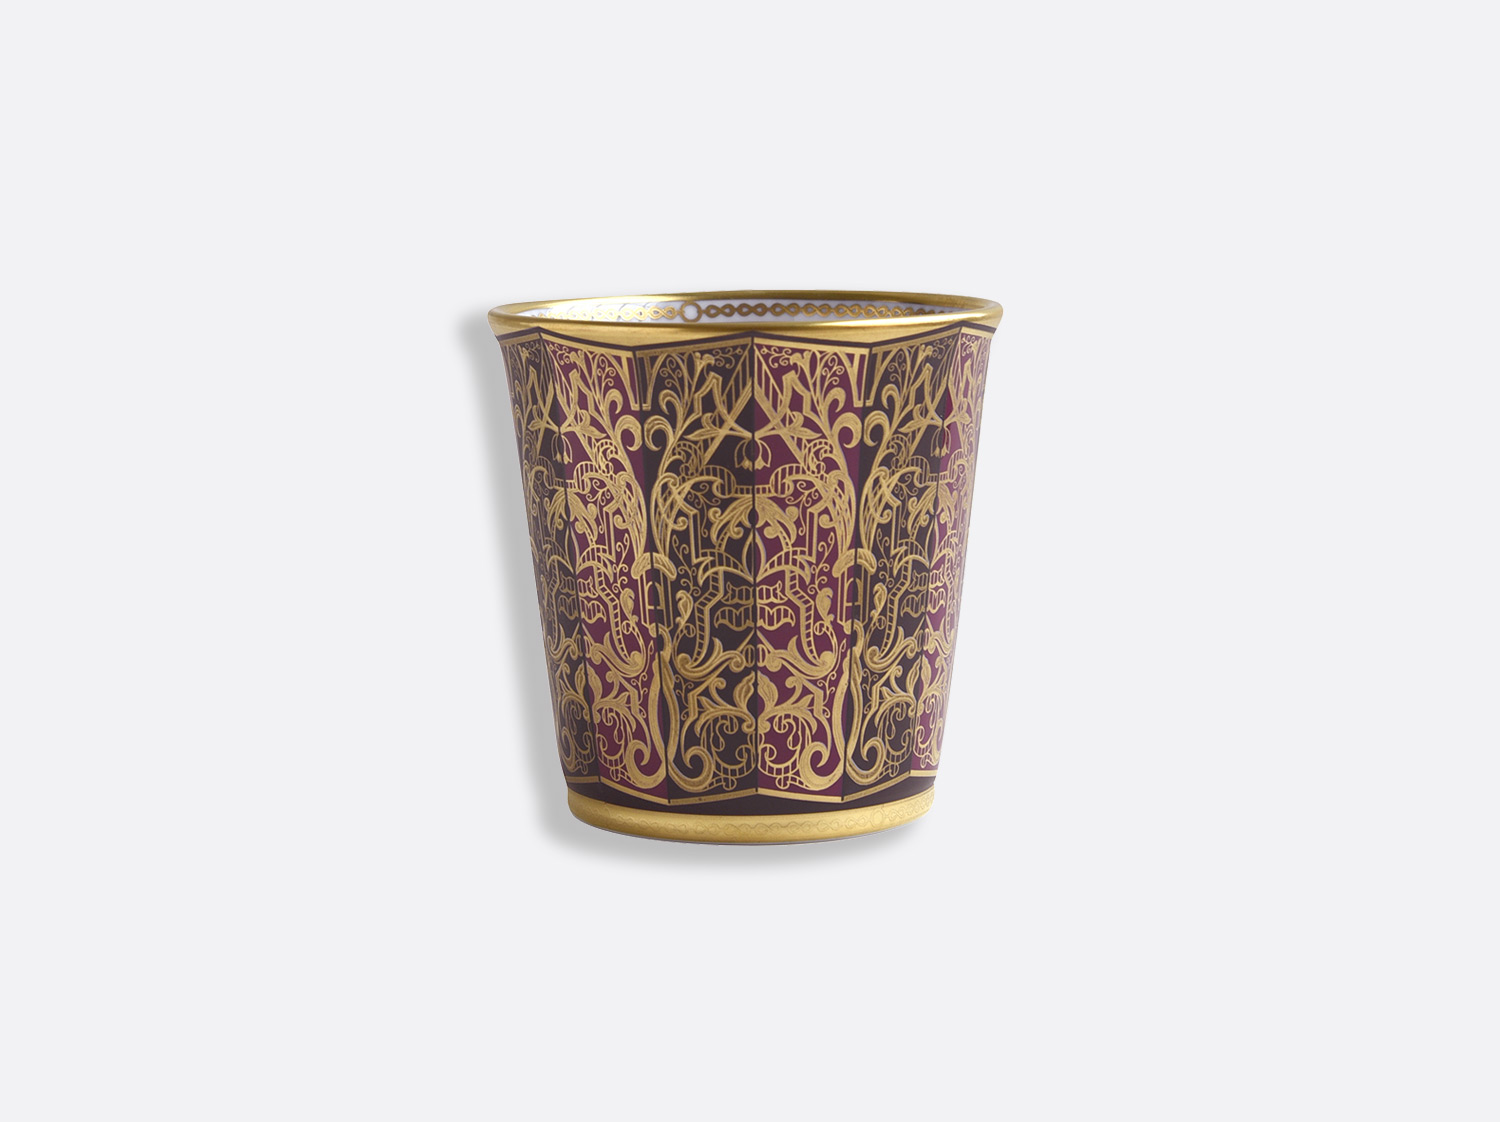 Pot 9 cm + bougie parfumée 200g en porcelaine de la collection Eventail Bernardaud